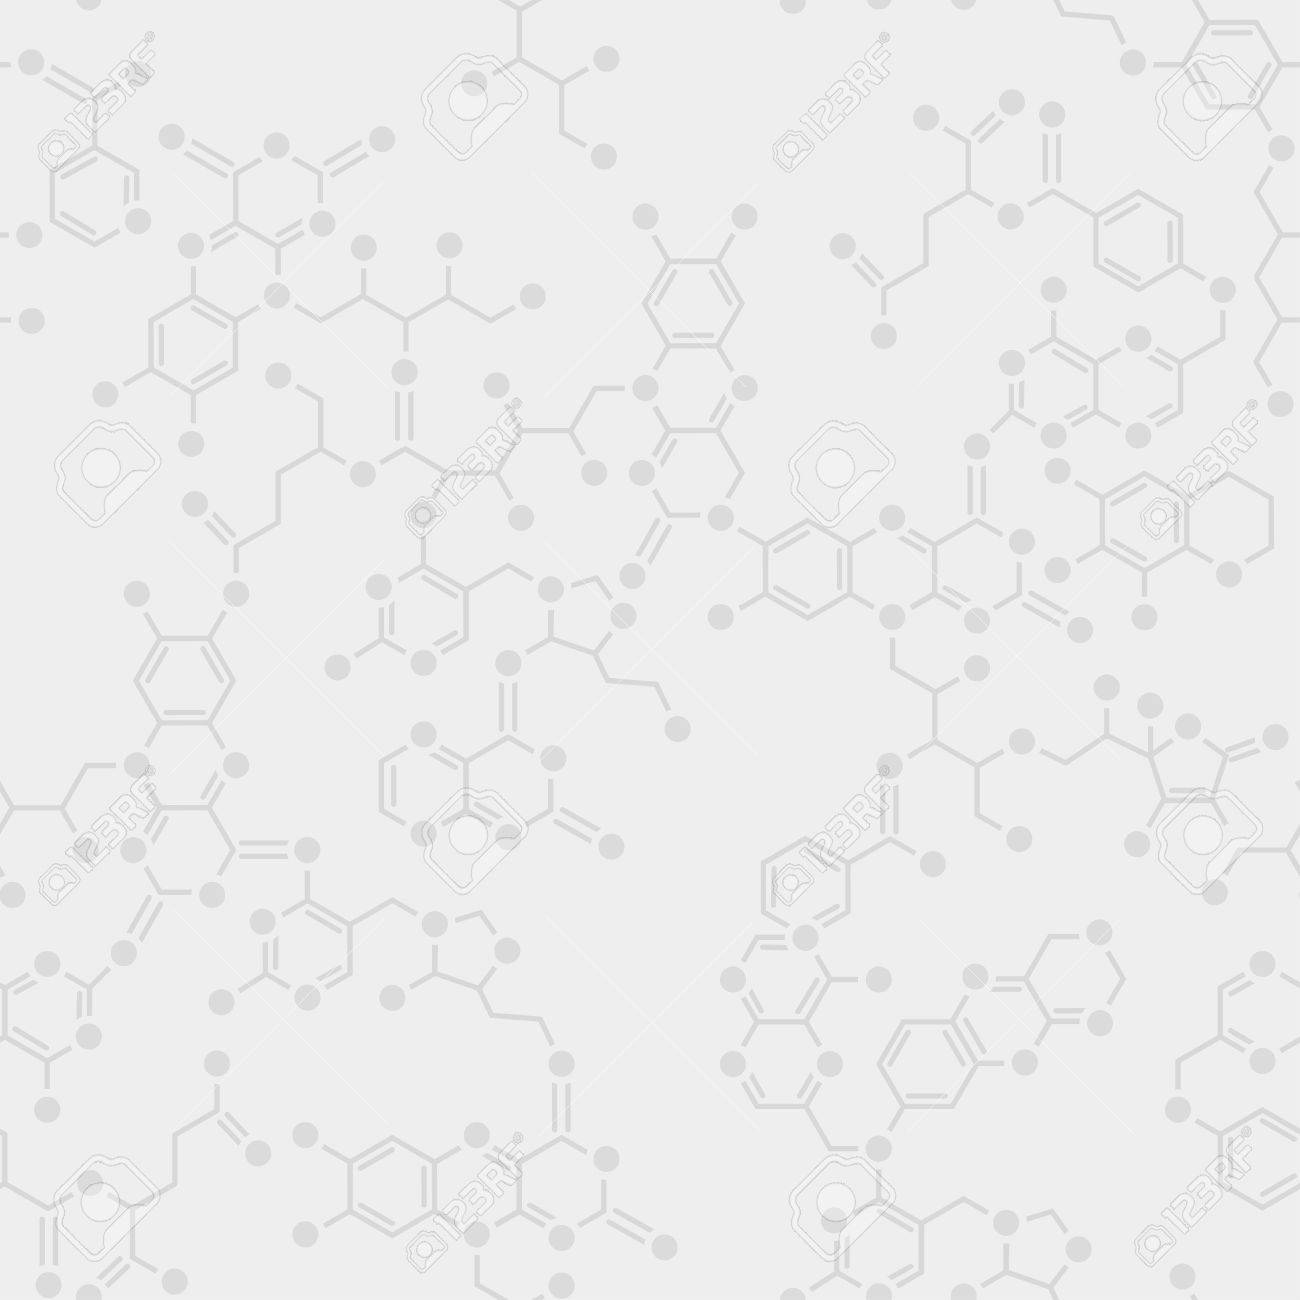 Seamless simple science gray background. Schematic molecules bond together. - 37040403